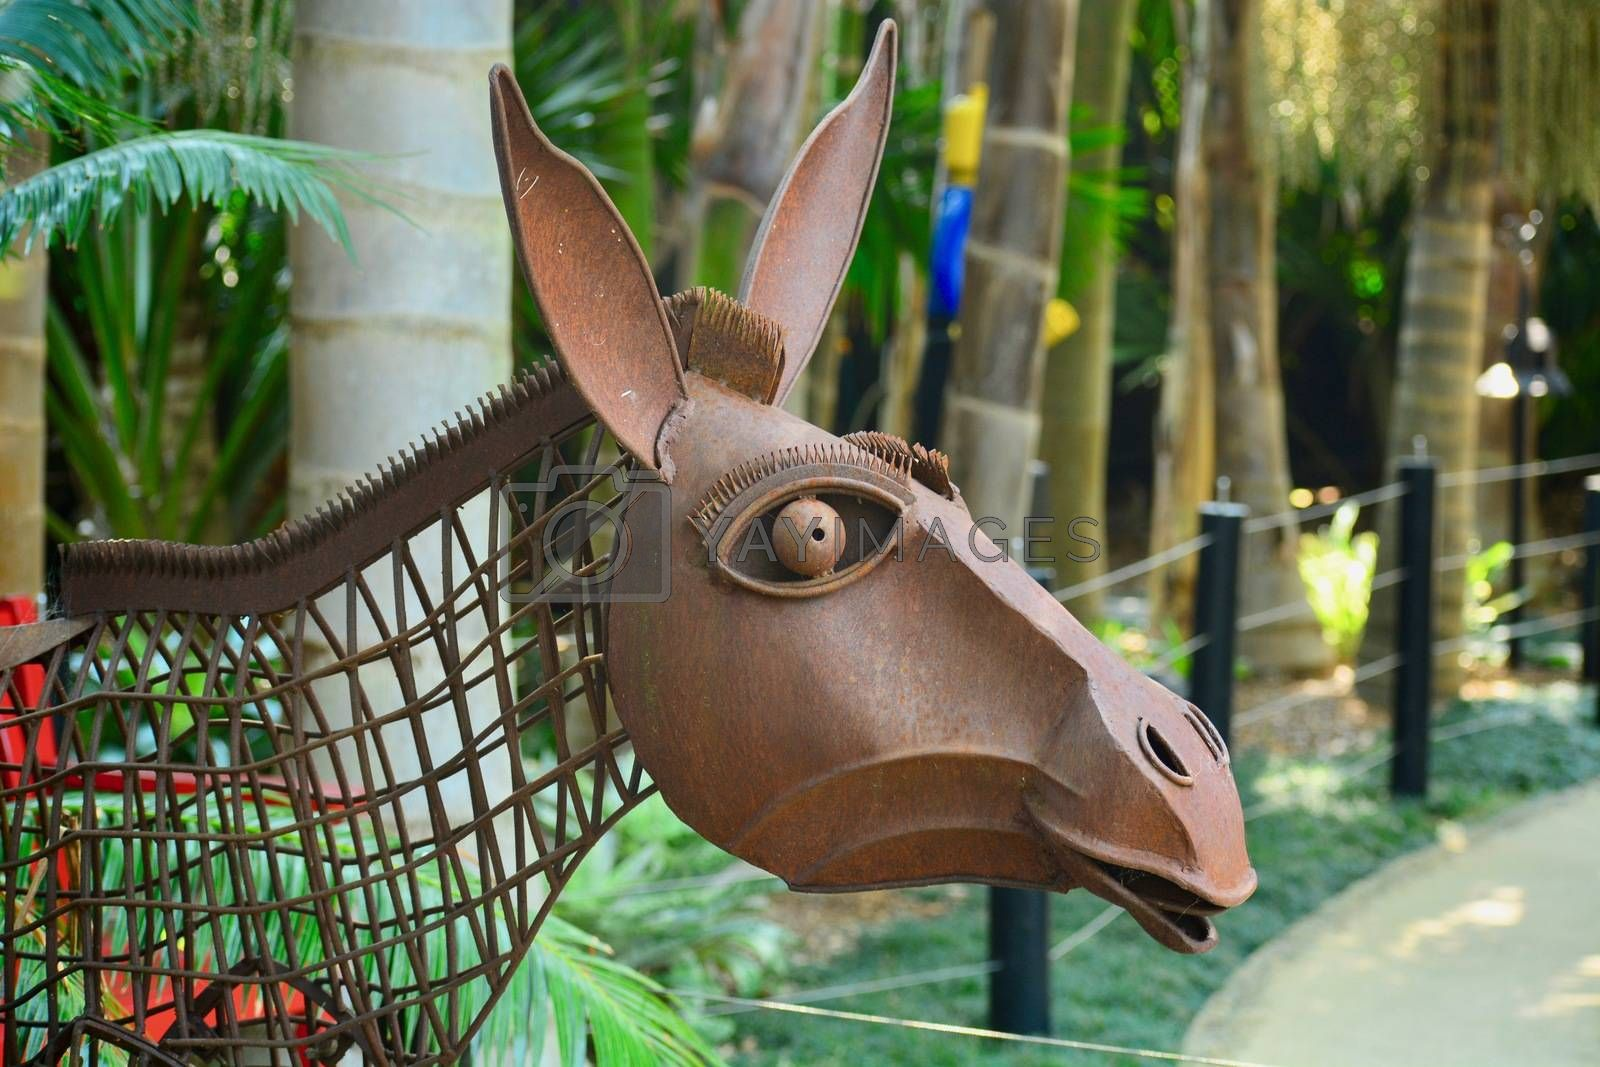 Peculiar modern sculpture made of rusty wire and some metal parts, representing a donkey.